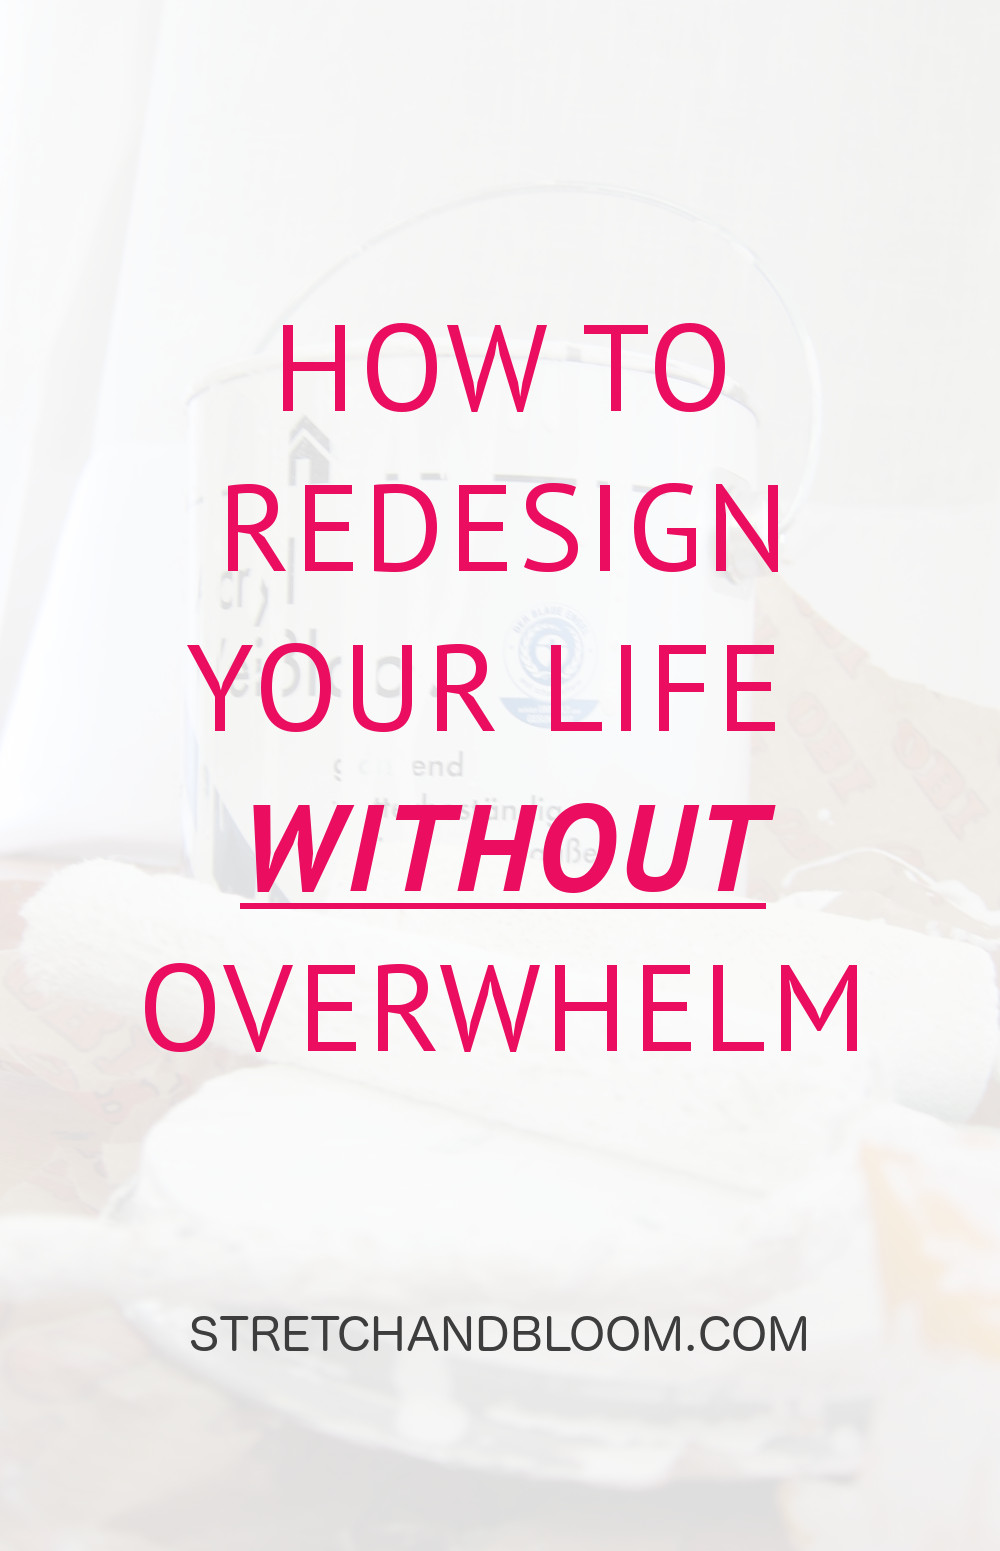 Just like remodeling your house, redesigning your life can be overwhelming. This article shares the secret to redesign your life withour overwhelm.